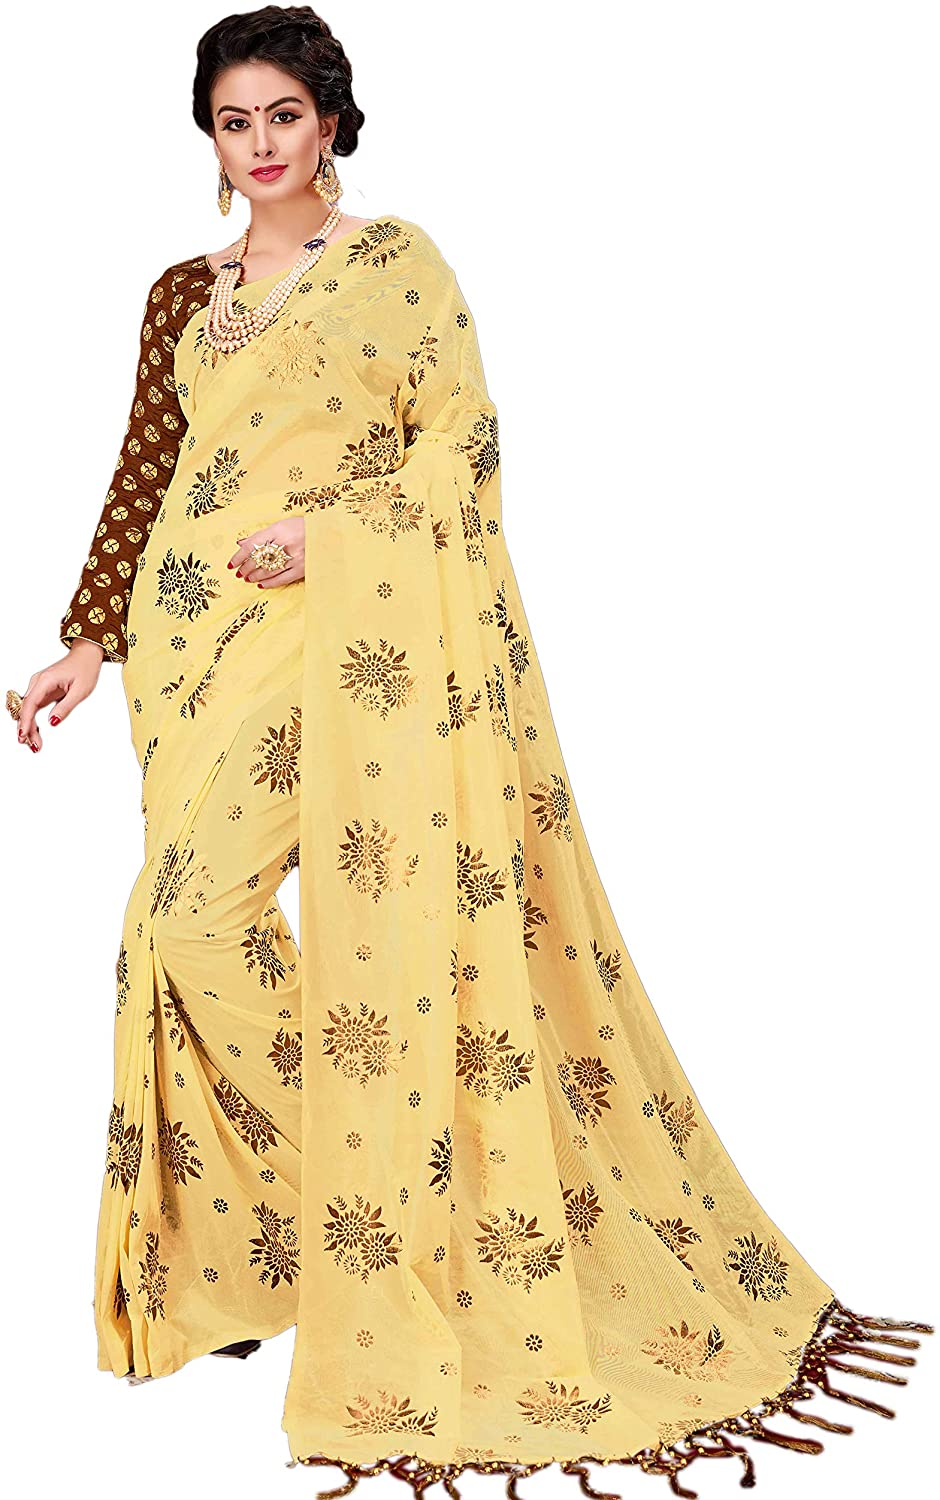 Indian Designer Ethnic Bollywood Traditional Fancy Net Saree Blouse S4724 Yellow